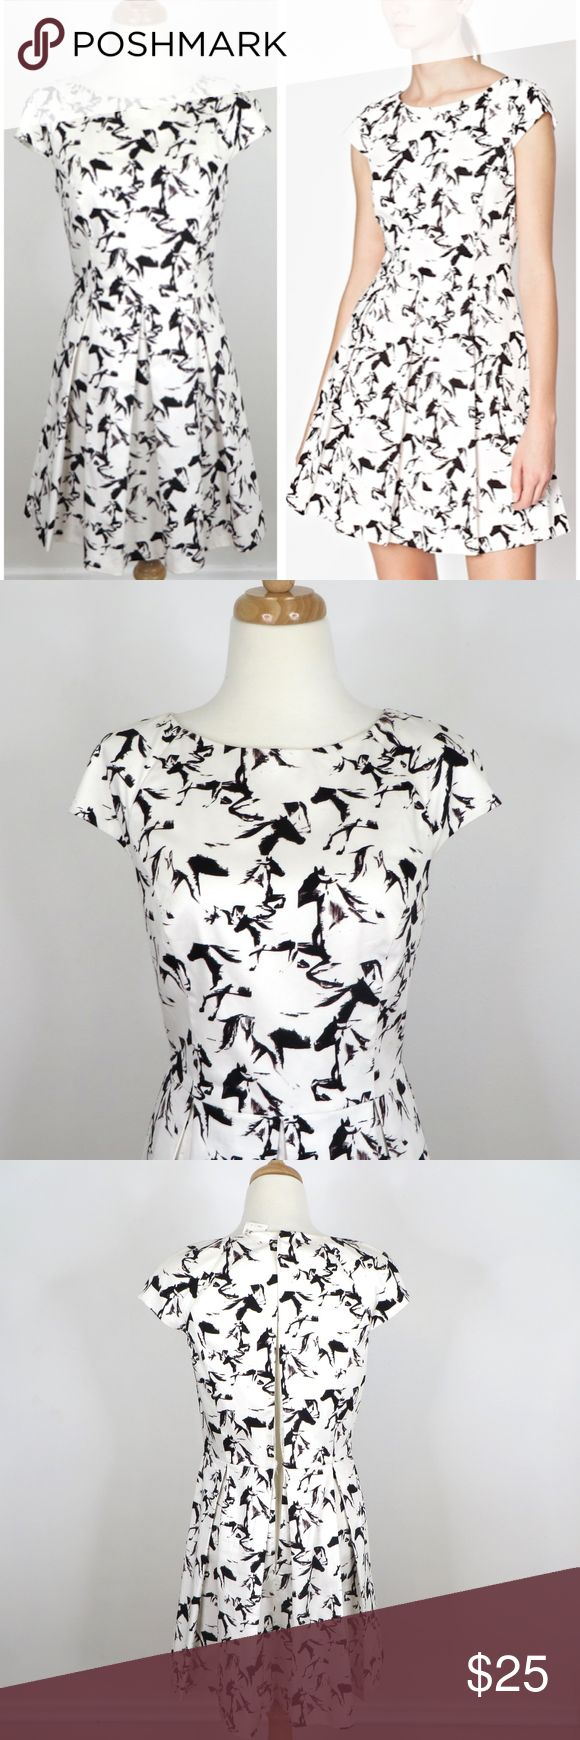 "$178 FRENCH CONNECTION New with reticket tags from Bloomingdale's but  *** NO ZIPPER ***  No zipper whatever / broken zipper.   Style name: Hatched Horses.  Black and white horse print, fit and flare silhouette, cap sleeves, pleated skirt portion, cotton blend.  Approximately 17"" across armpit seam to armpit seam and 34"" long.   Retails for $178.  Automatically reduce price 20% for 3+ bundles. French Connection Dresses Mini"